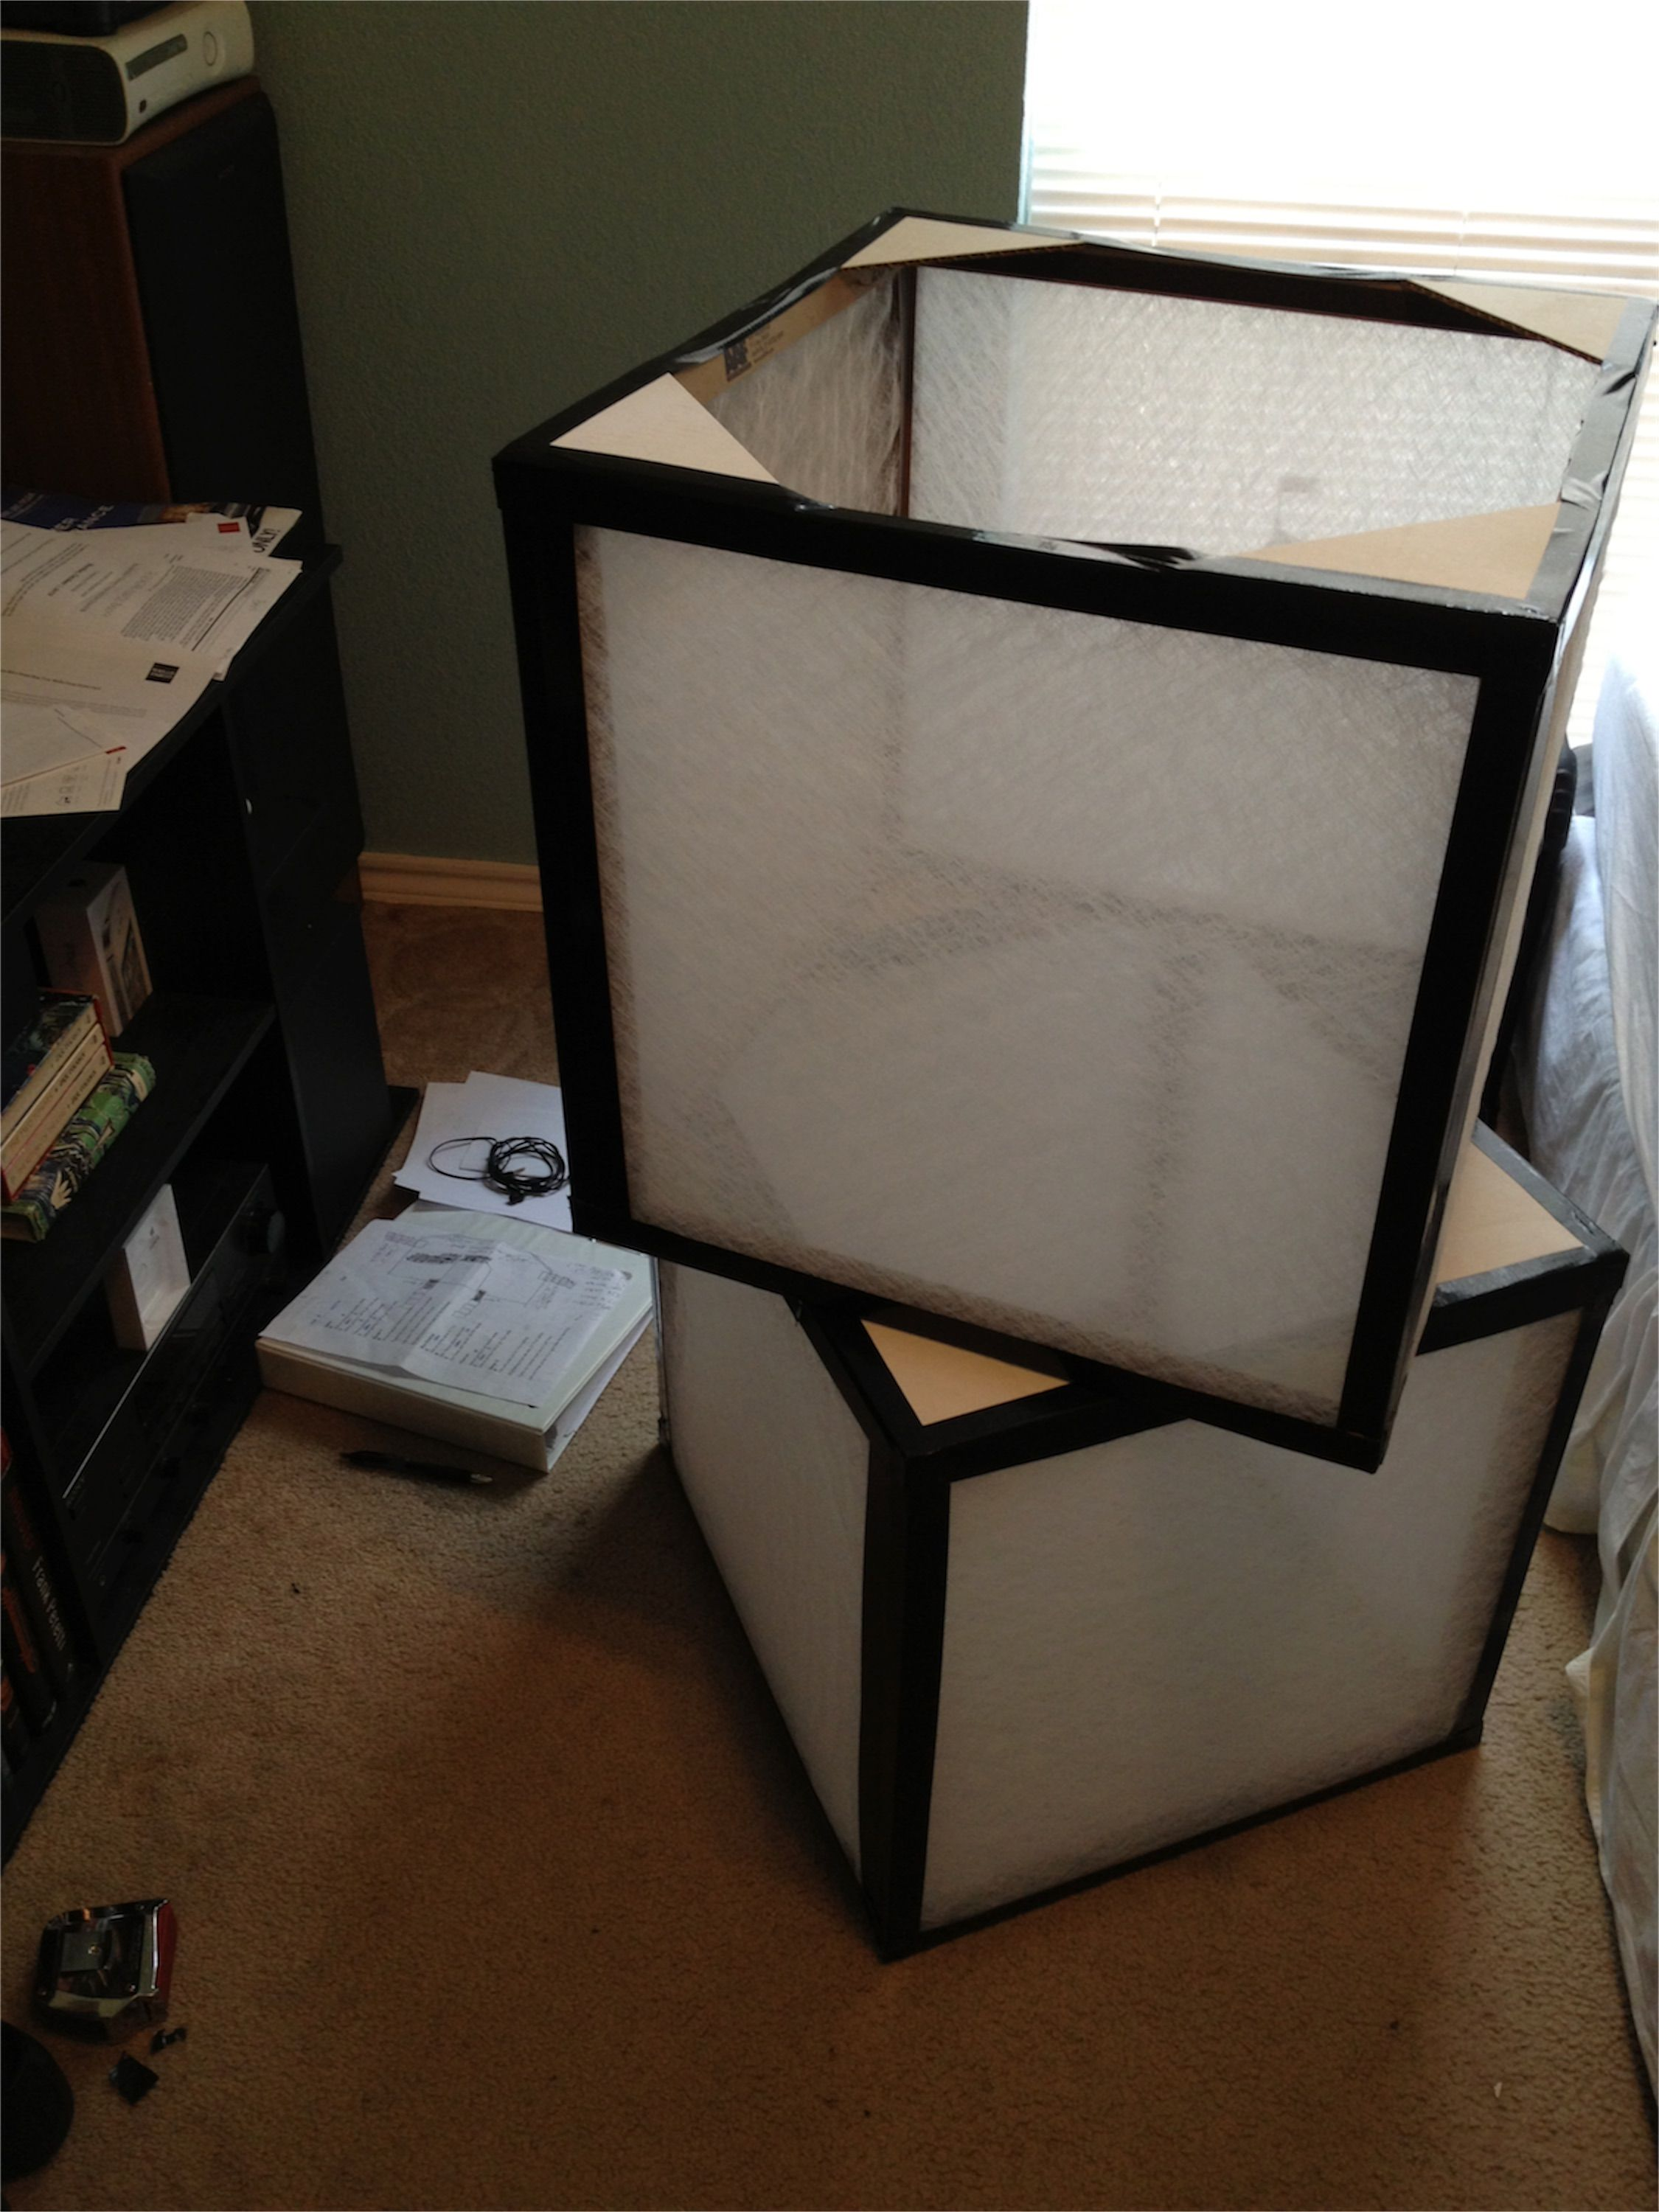 air filter boxes | Stage | Pinterest